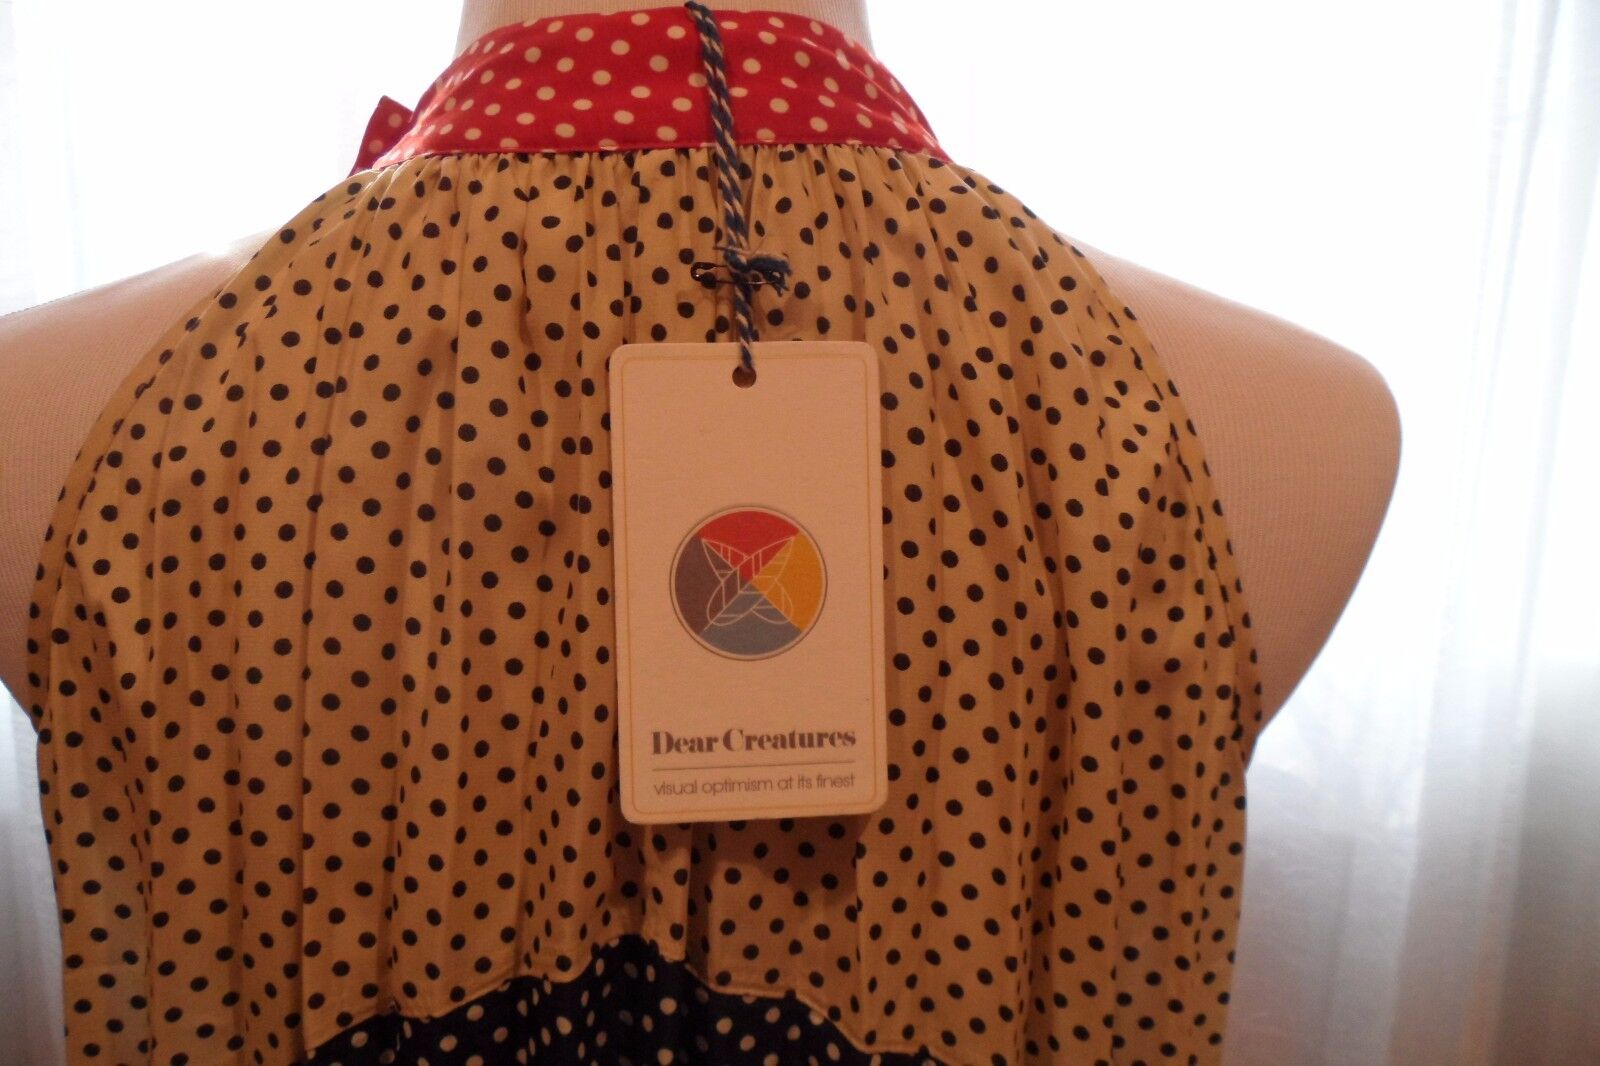 DEAR CREATURE FULLY FULLY FULLY PLEATED MULTI-COLOR POLKA DOT FAB SUMMER DRESS, SUPER COMFOR 046b50